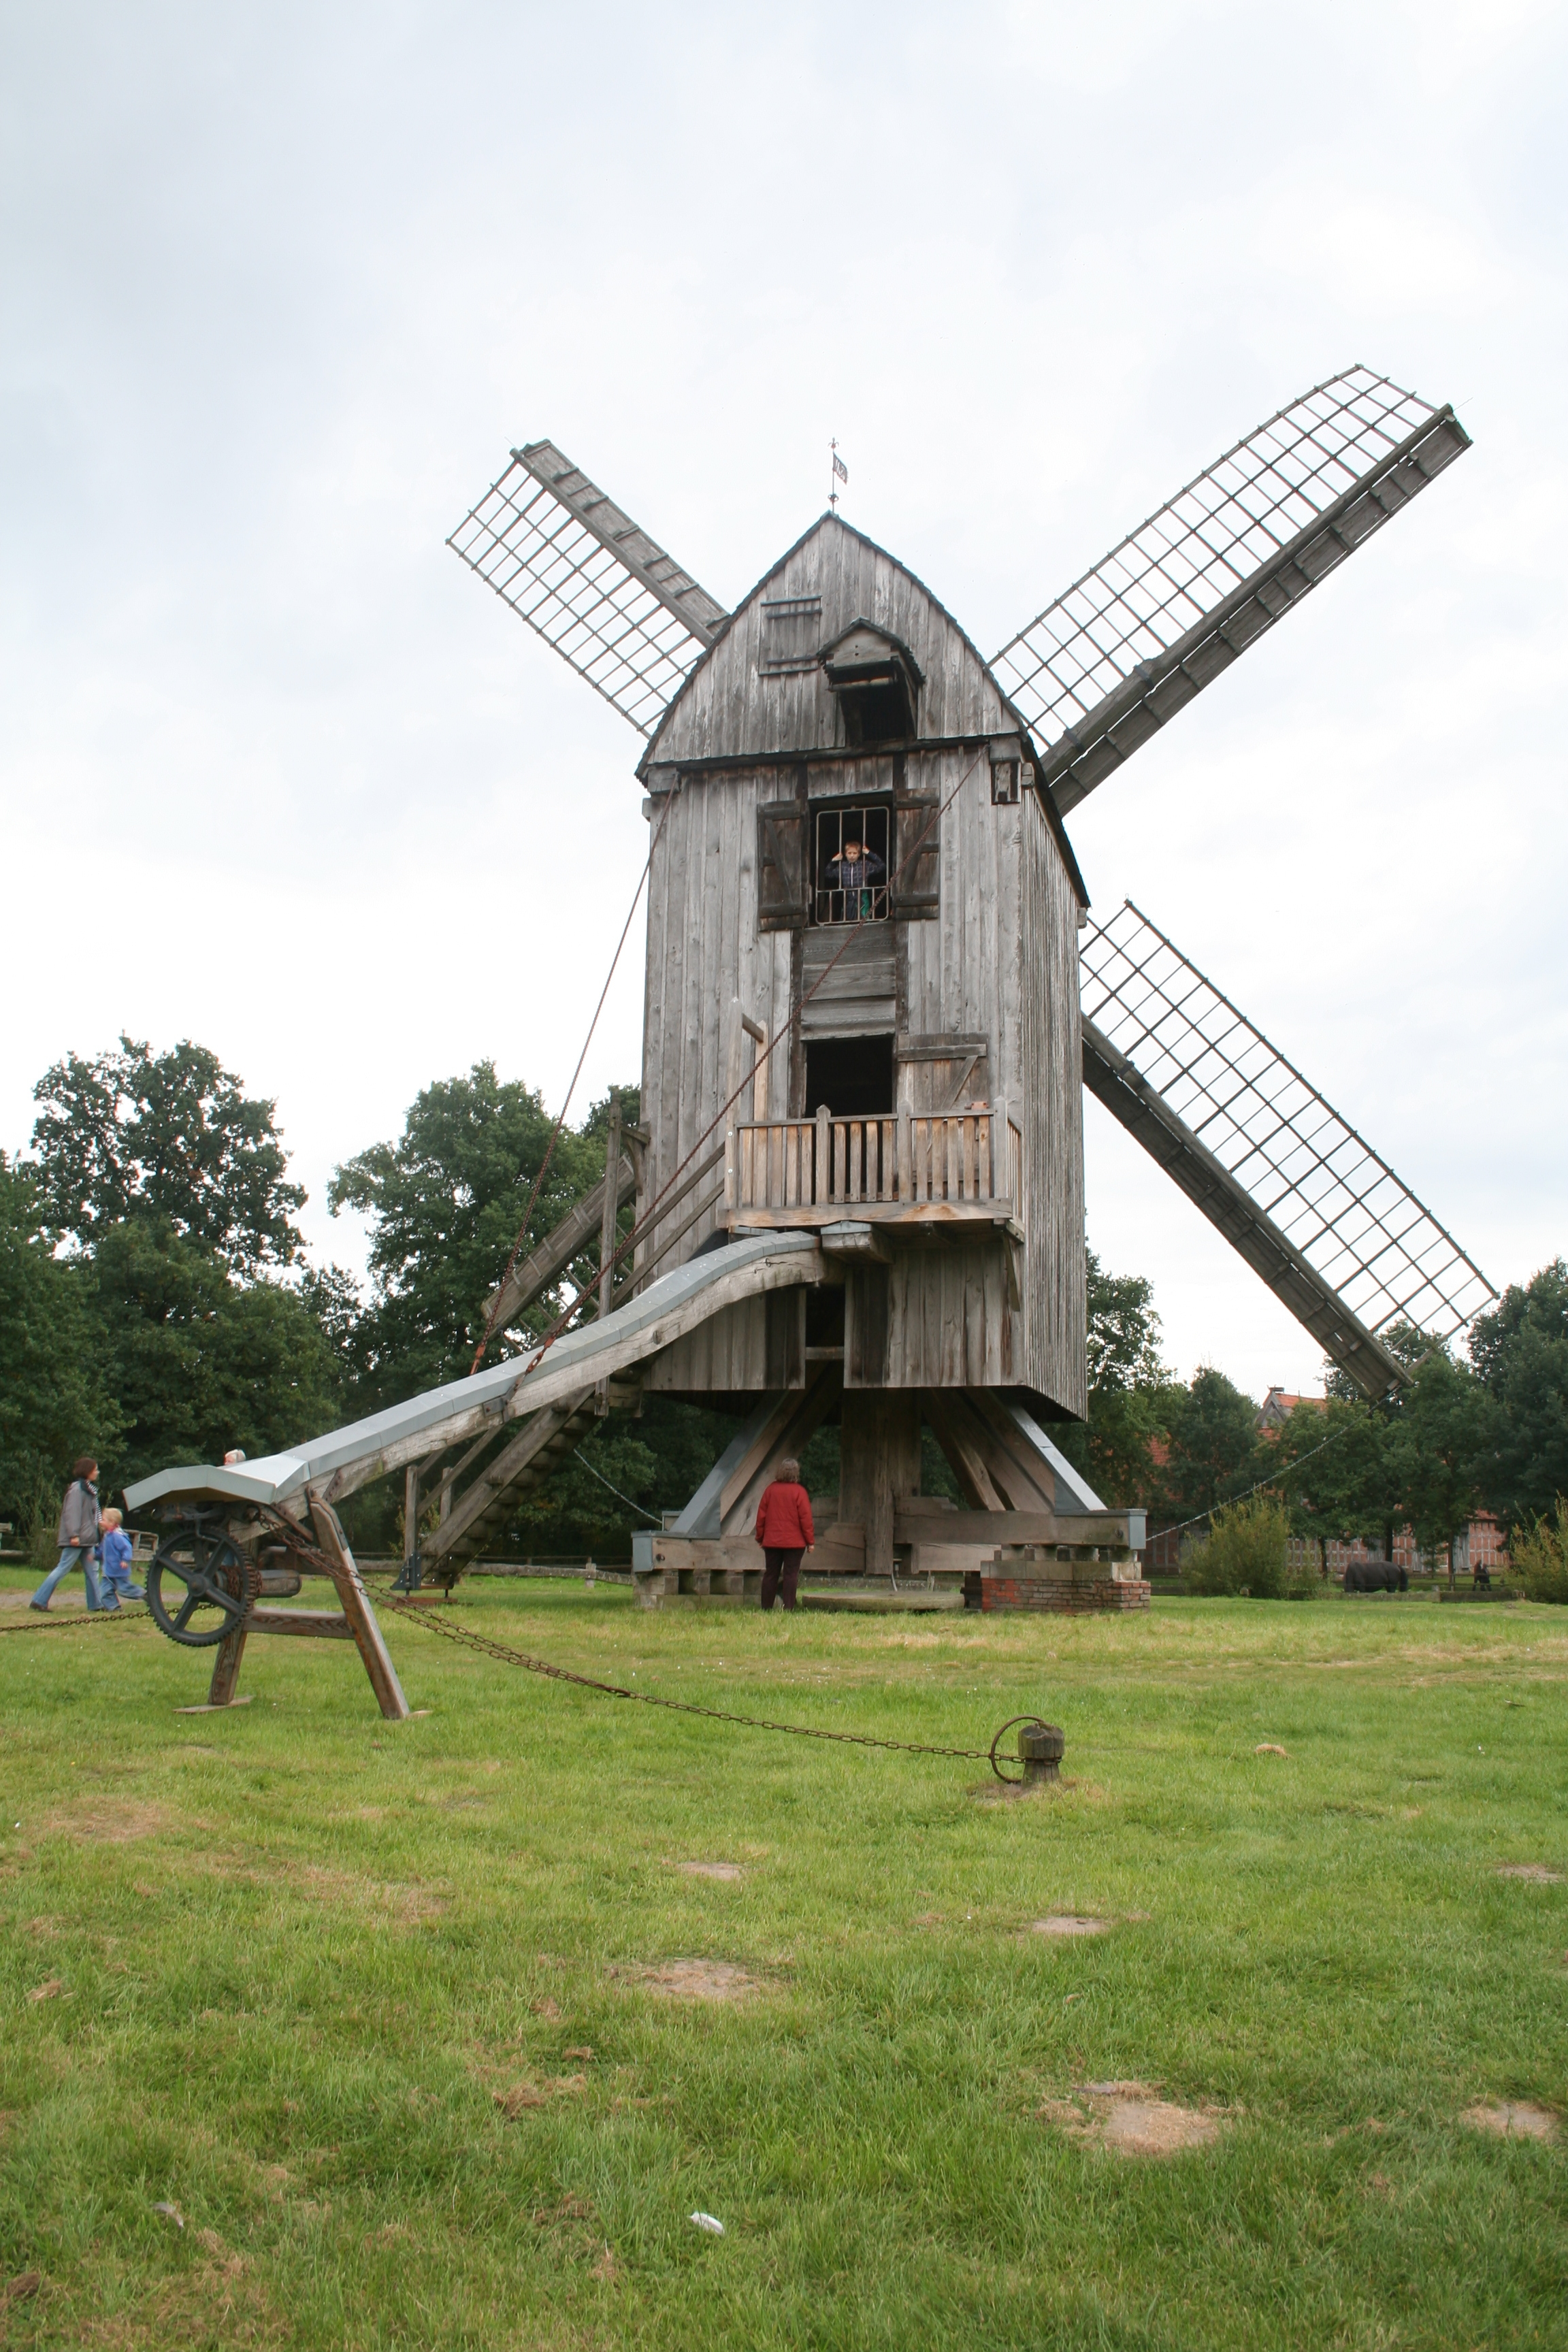 Post mill, rebuild in the open air museum Cloppenburg, Germany. The mill has presumably been build in 1683 at Essern, District of Nienburg Germany. Photo taken on September 21, 2008.